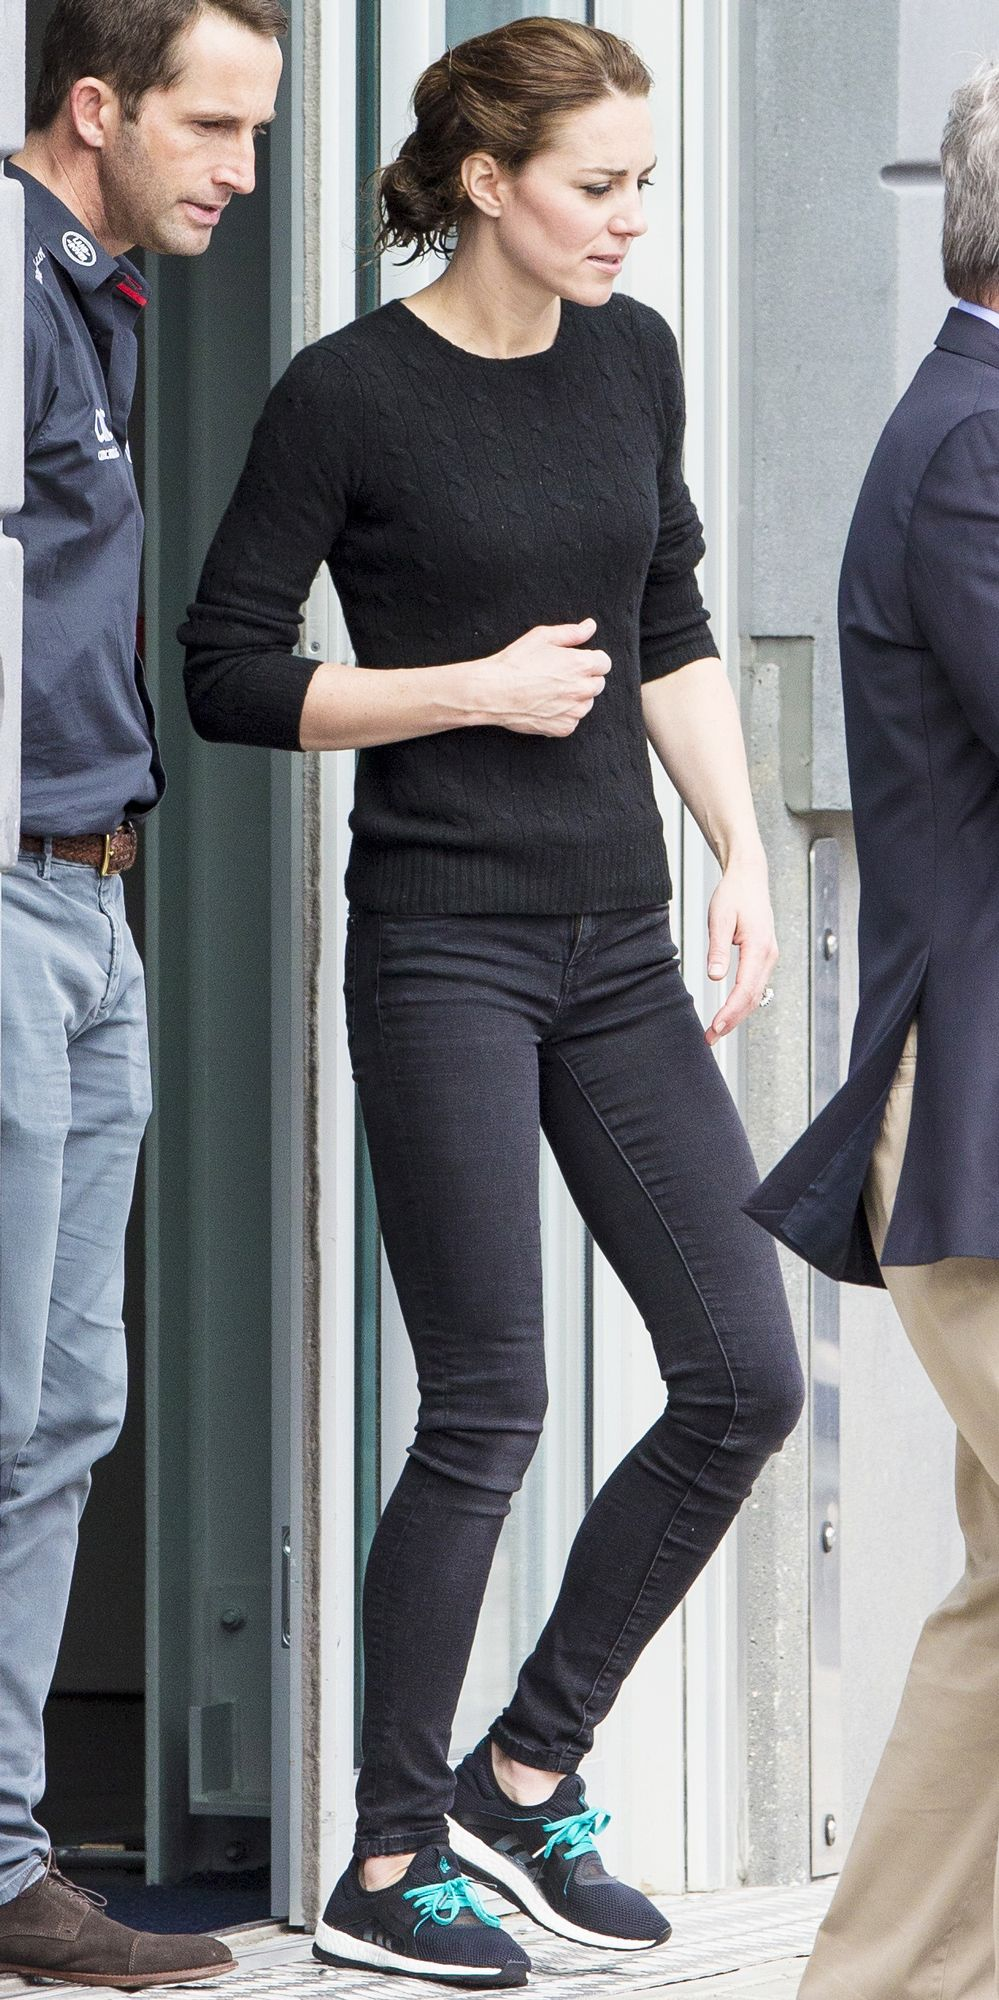 030504c33df8 Kate Middleton s Most Memorable Outfits - May 21